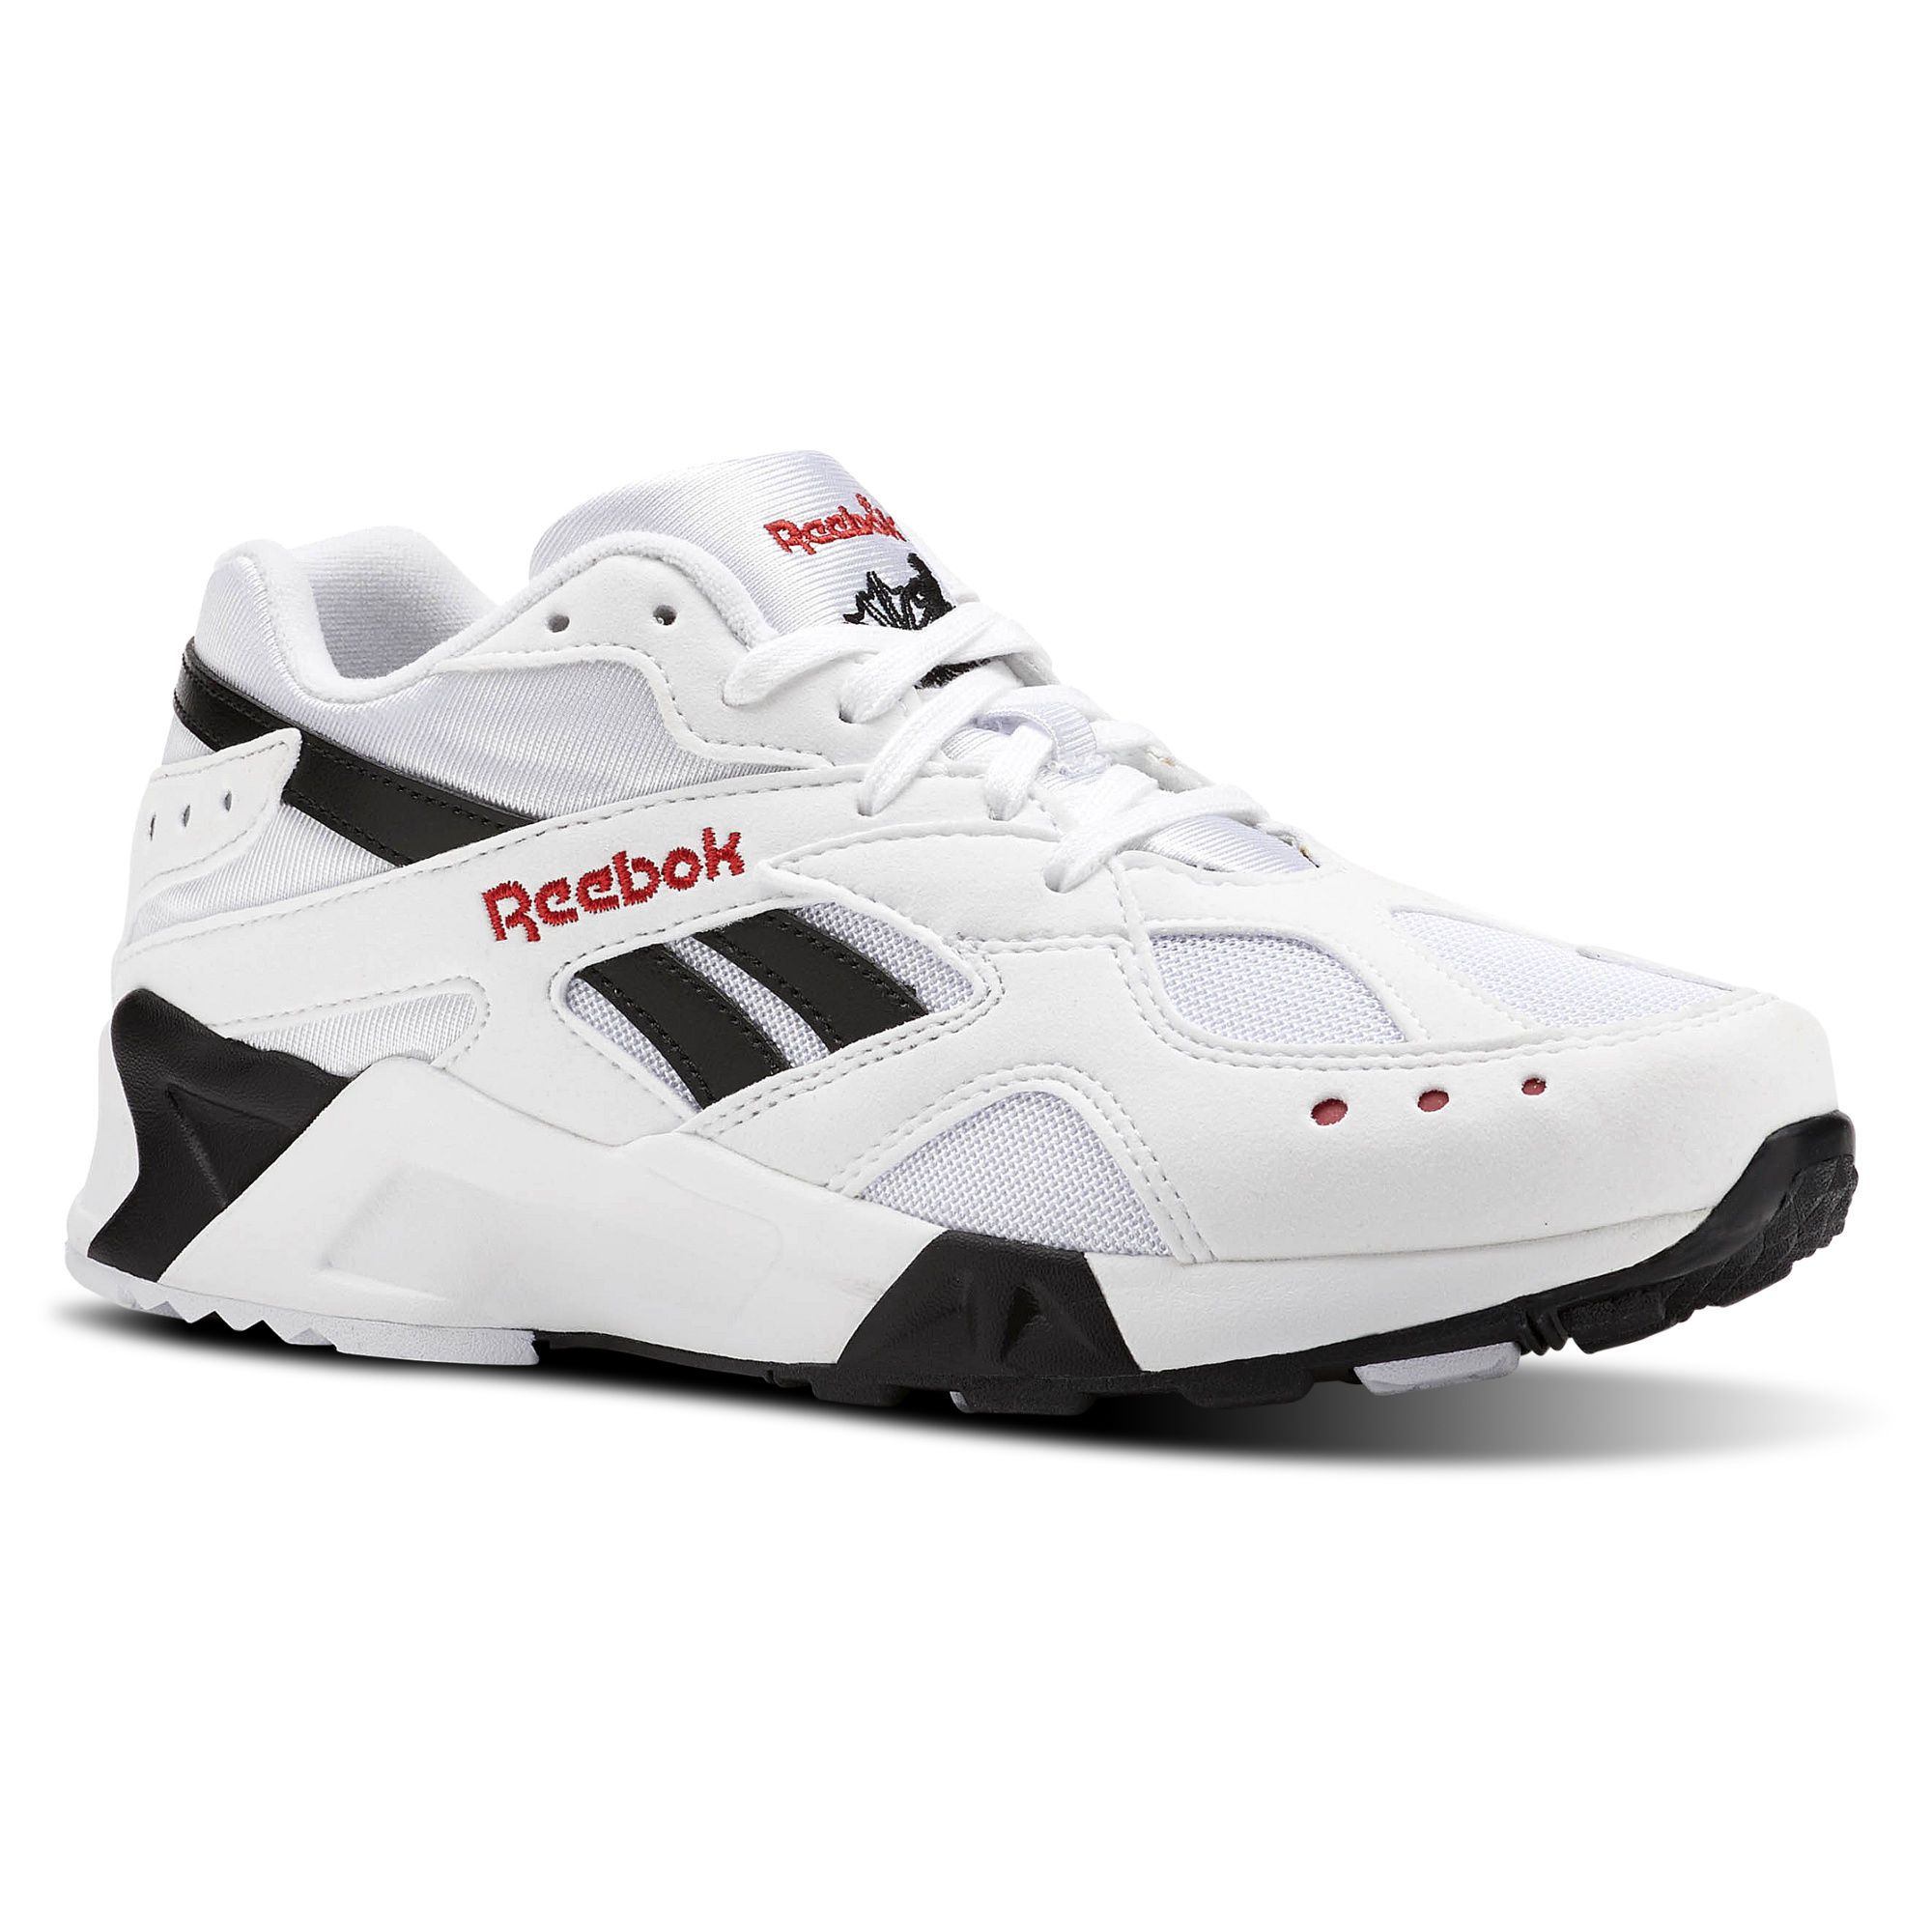 9b961d9333f72 Shop for Reebok Aztrek - White at reebok.com. See all the styles and colors  of Reebok Aztrek - White at the official Reebok US online store.